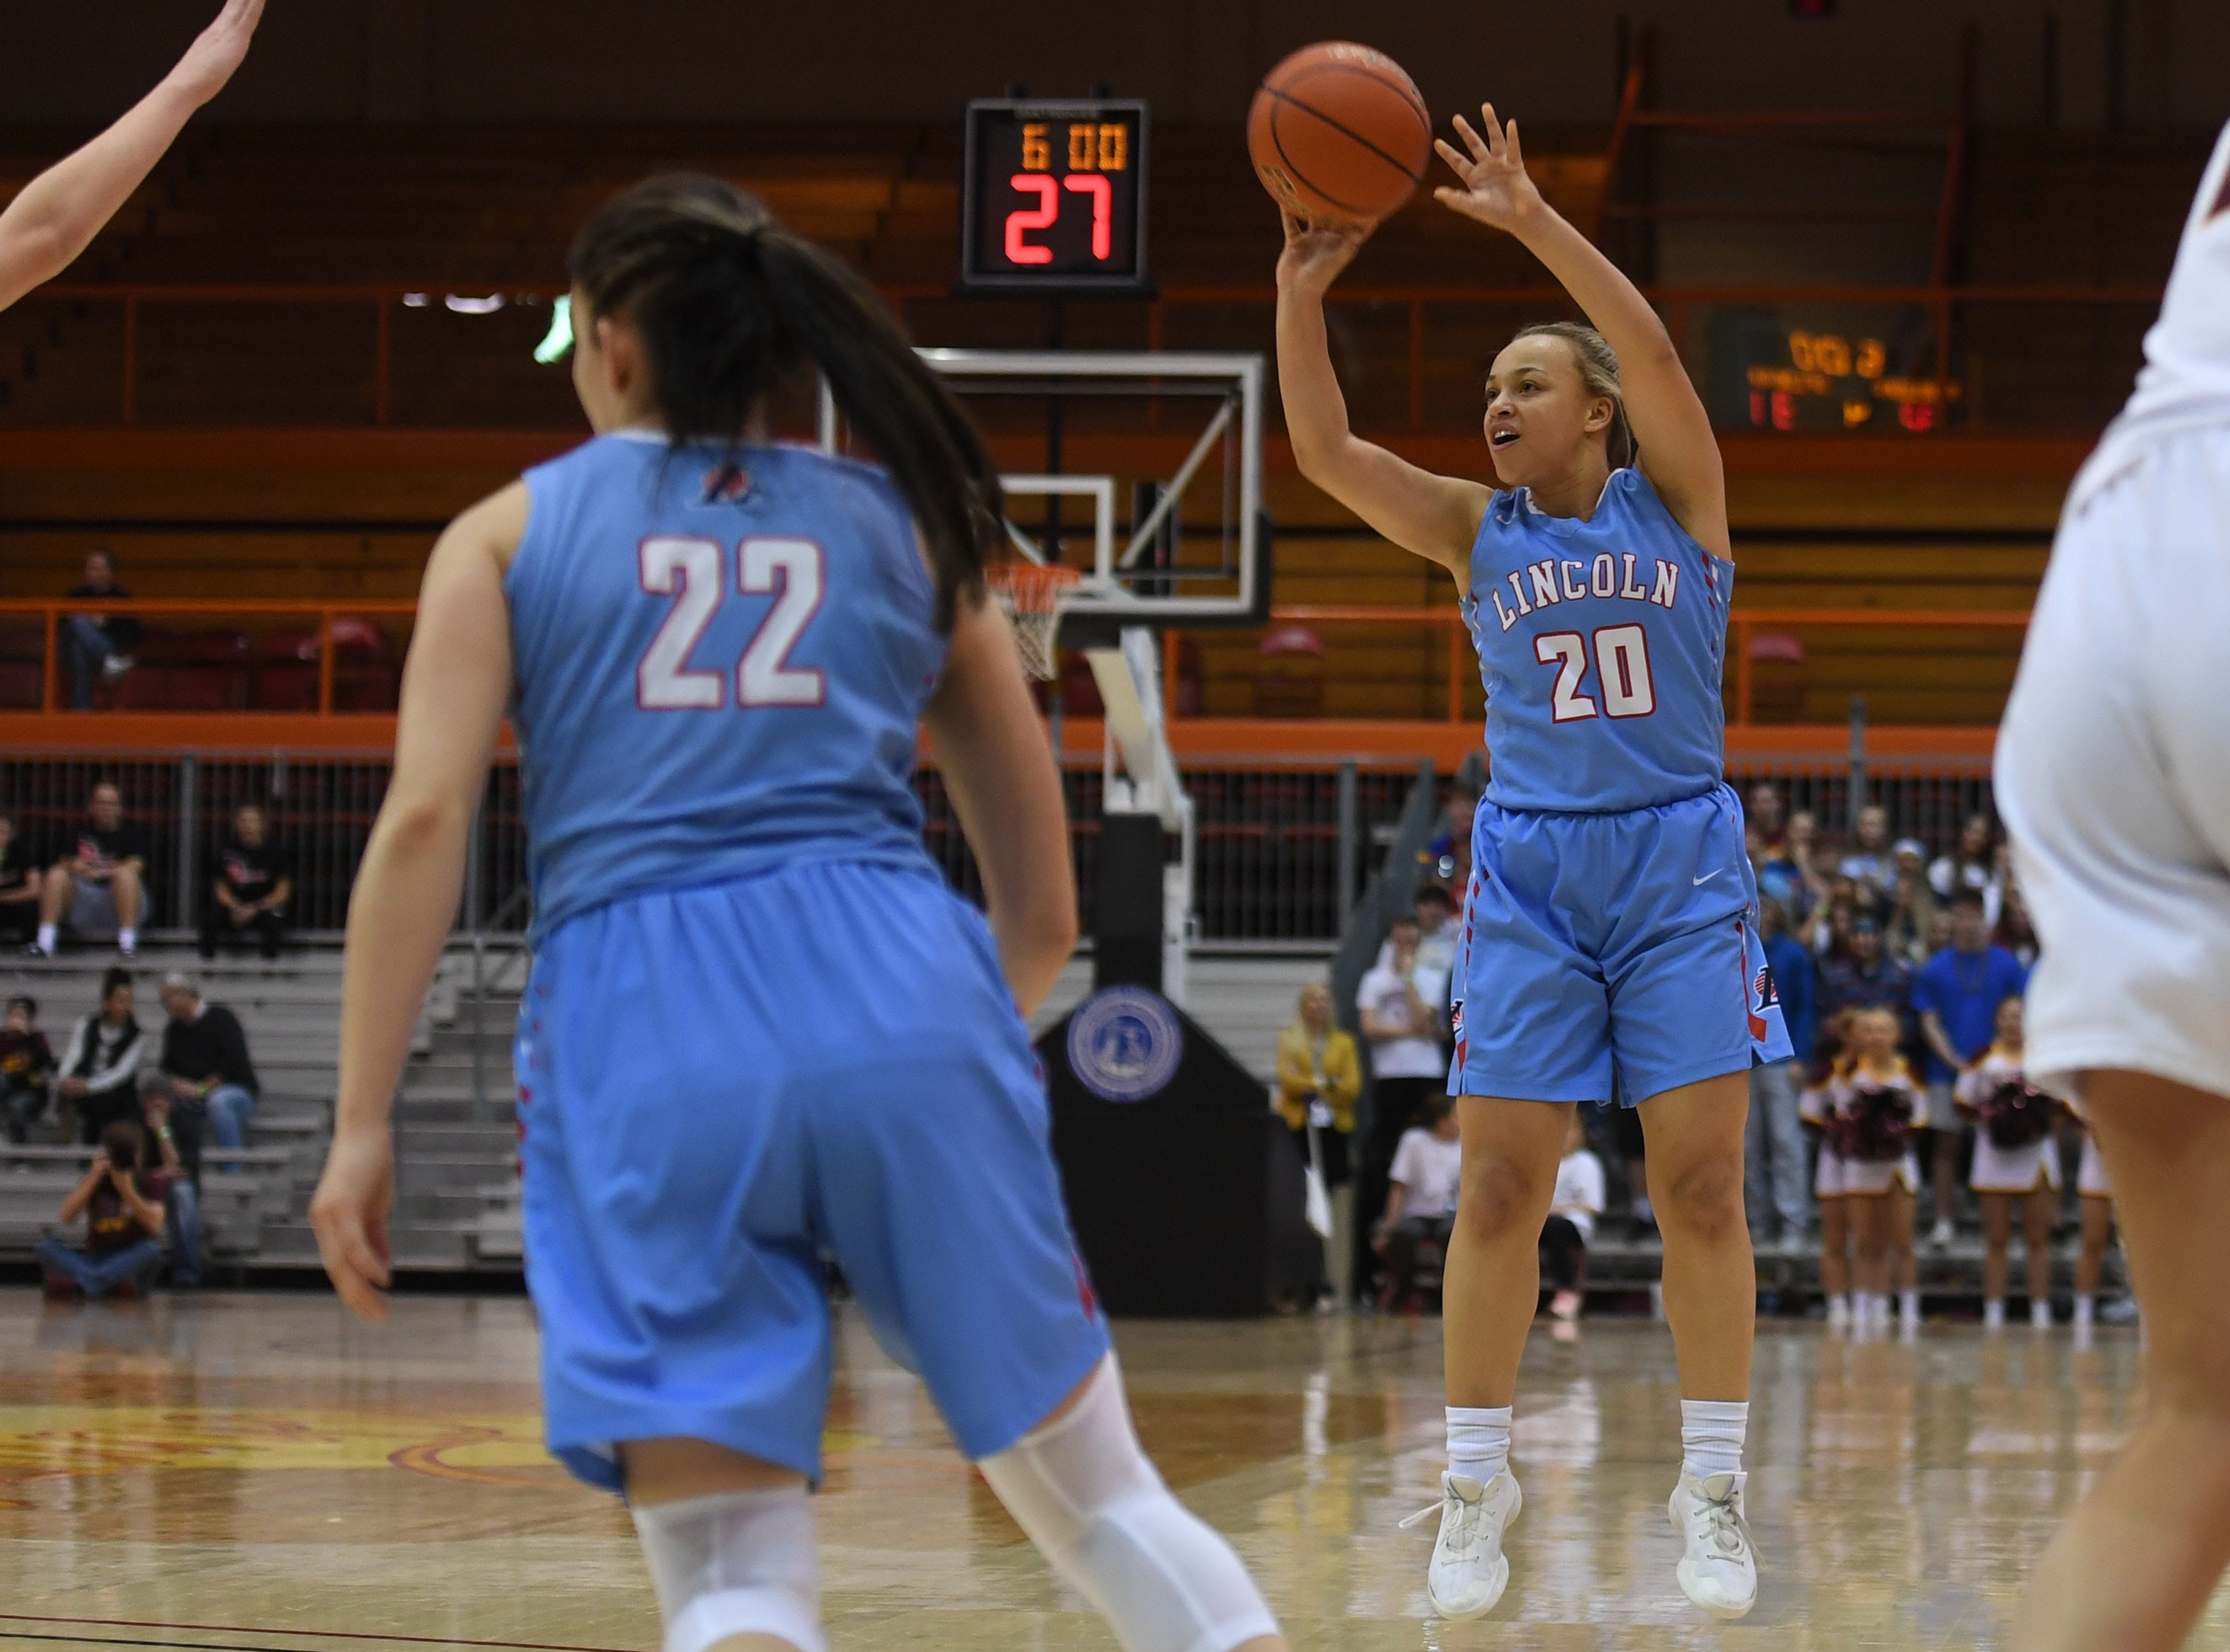 Lincoln's Mya Wilson takes a shot against Harrisburg in the Class AA semifinals Thursday, March 15, in Rapid City.